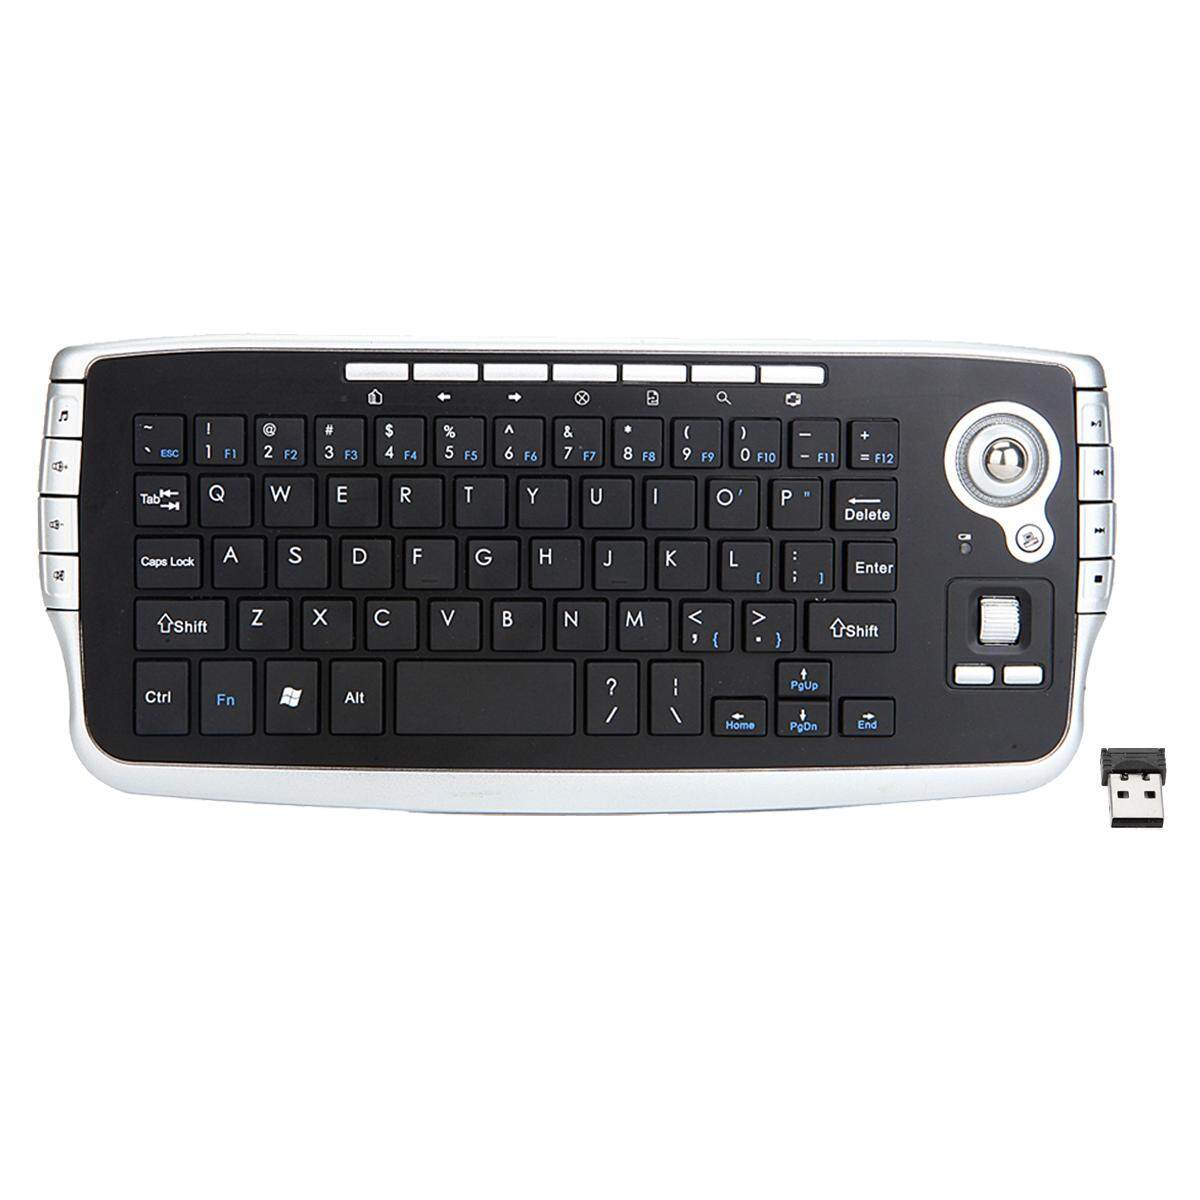 Basic Keyboards For Sale Computer Prices Brands Keyboard Wireless And Mouse Combo Hk 3800 Fn 717 3 In 1 24g Smart Tv Remote Control